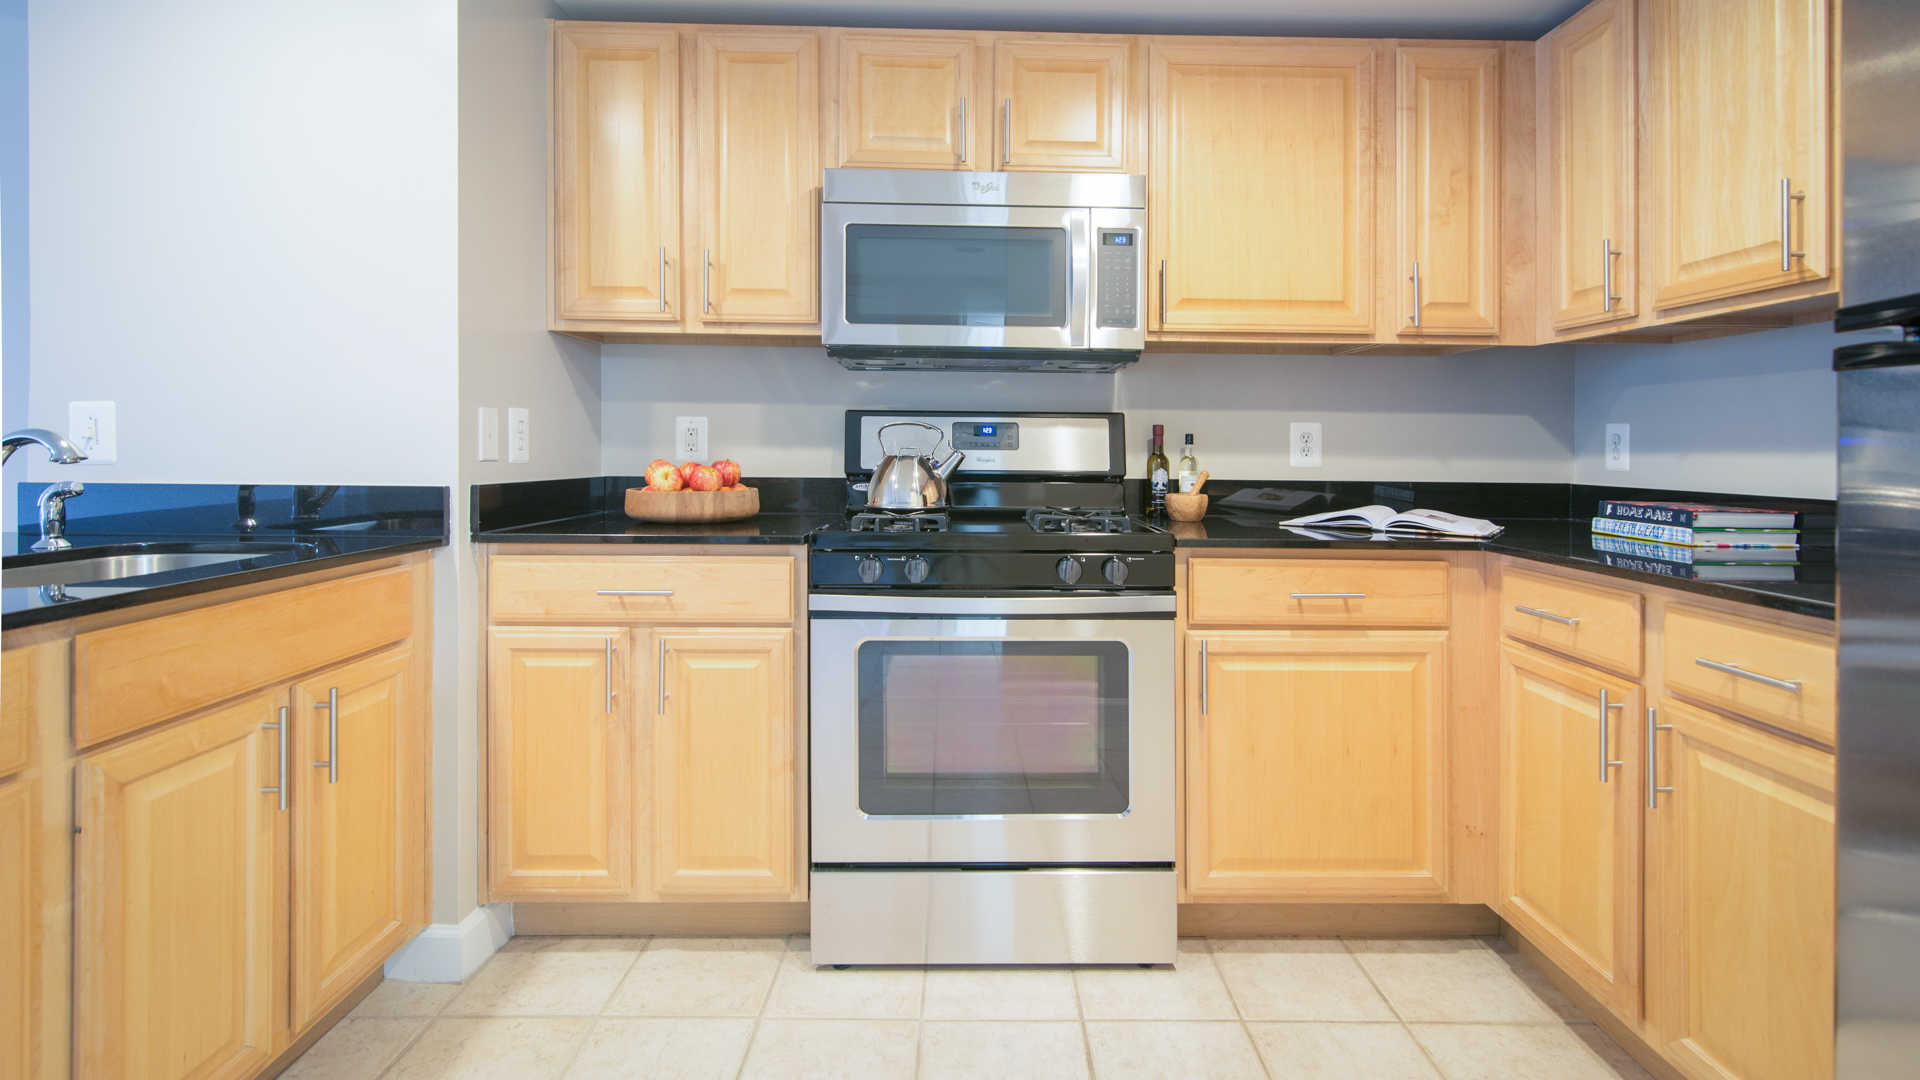 Kitchen with Stainless Steel Appliances and Granite Countertops